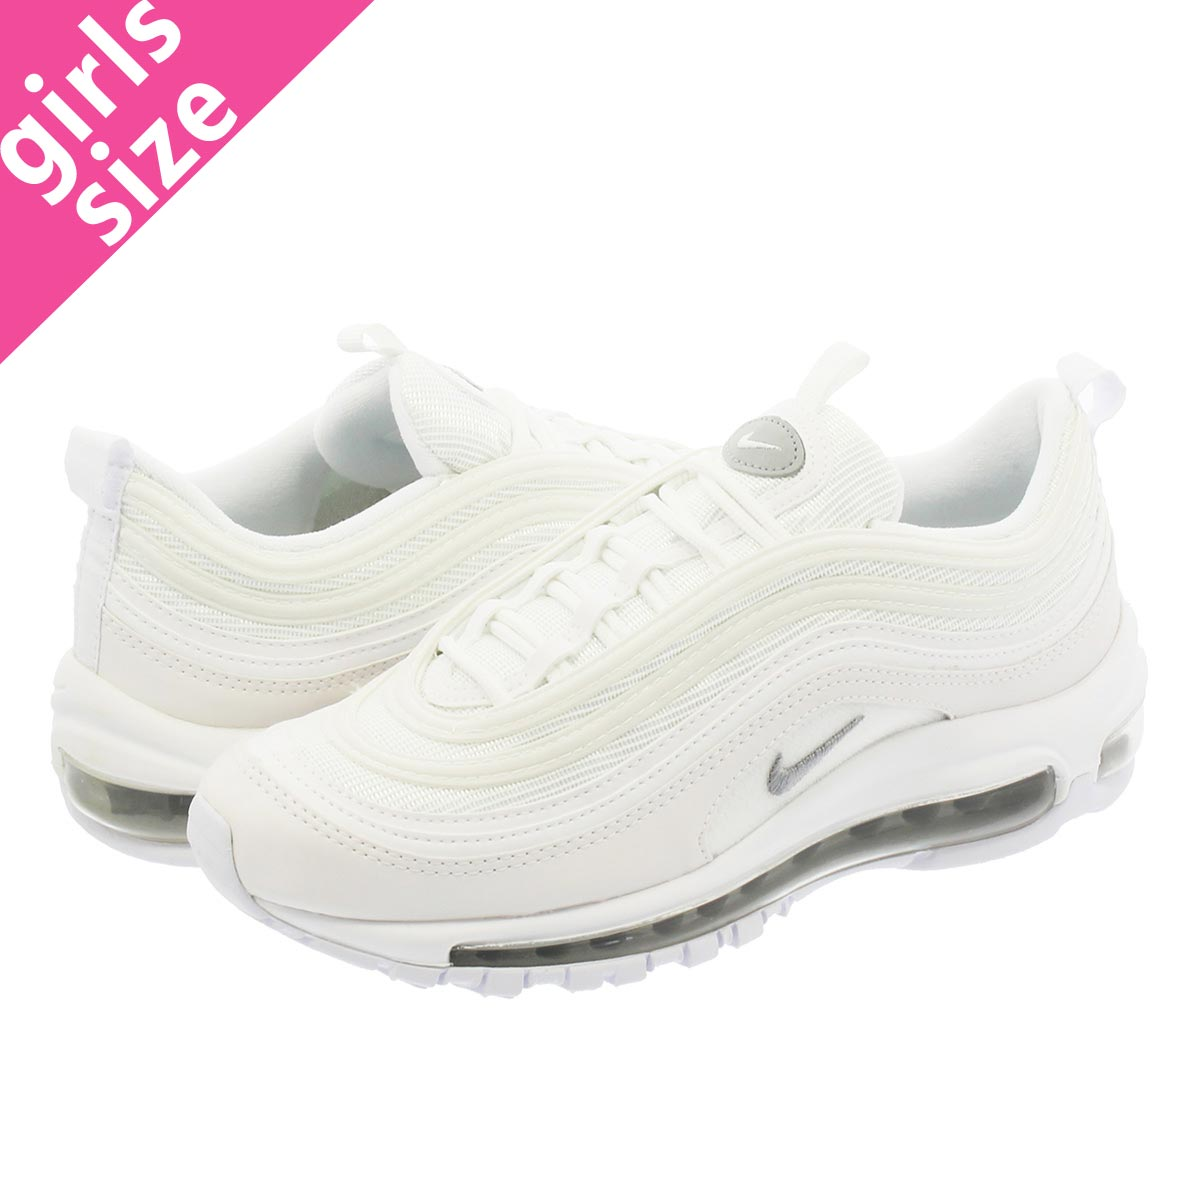 776cad3727 LOWTEX BIG-SMALL SHOP: NIKE AIR MAX 97 GS Kie Ney AMAX 97 GS WHITE ...